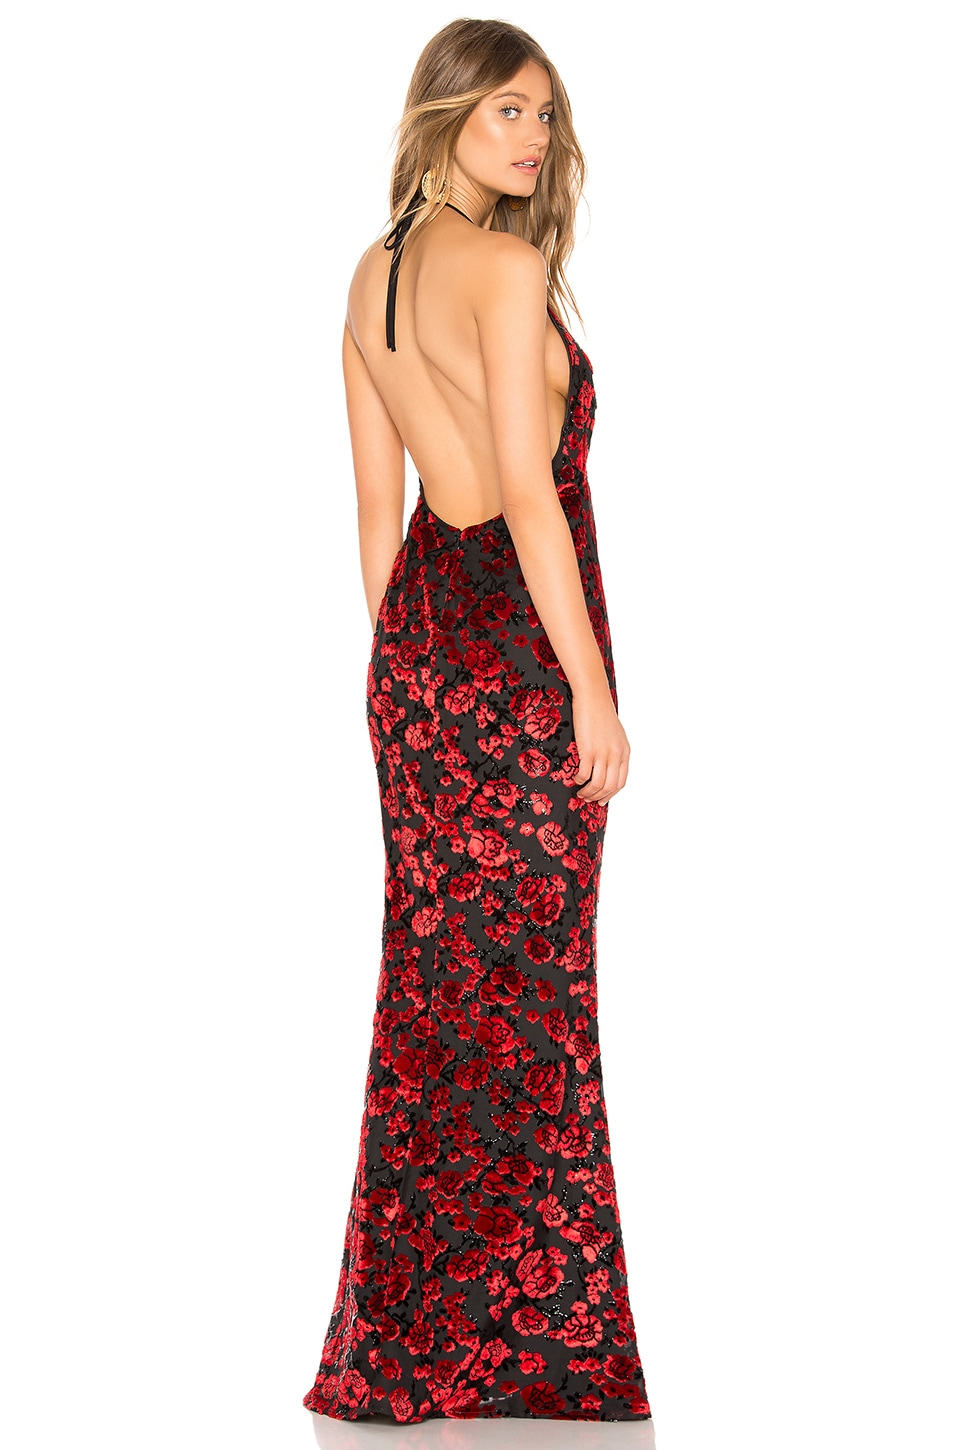 Lovers + Friends Mazzy Gown in Red & Black